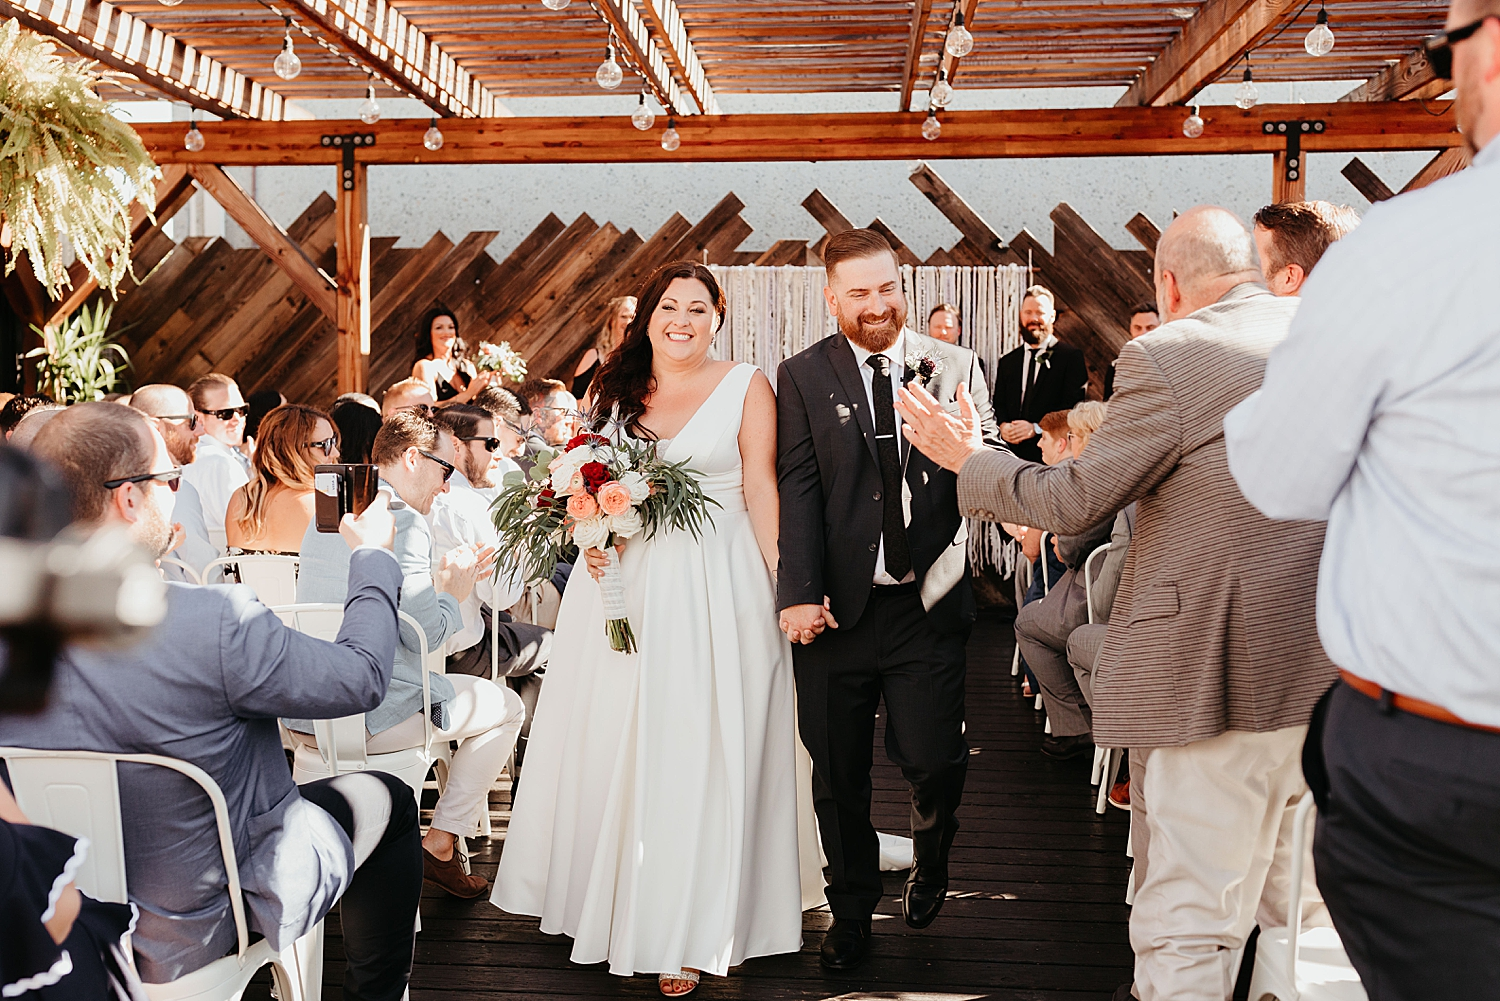 The-Wood-Shed-Booze-Brothers-Wedding-81.jpg